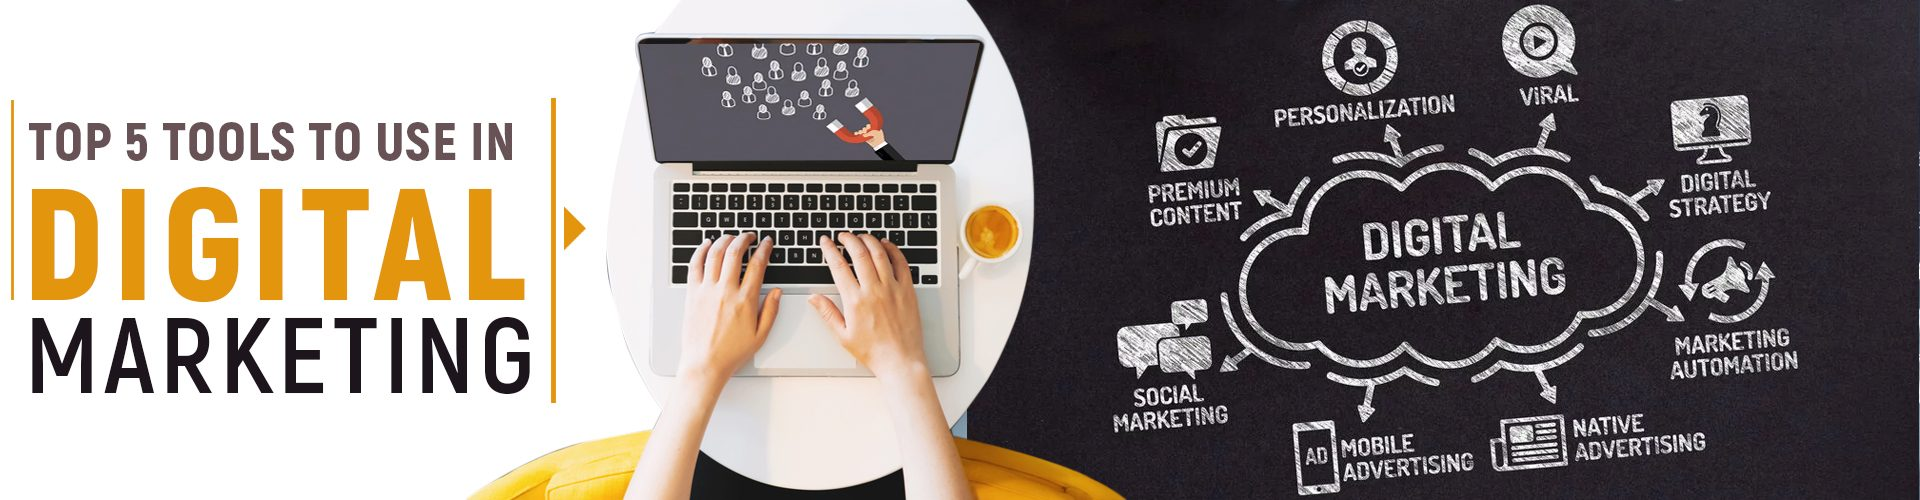 TOP 5 TOOLS TO USE IN DIGITAL MARKETING